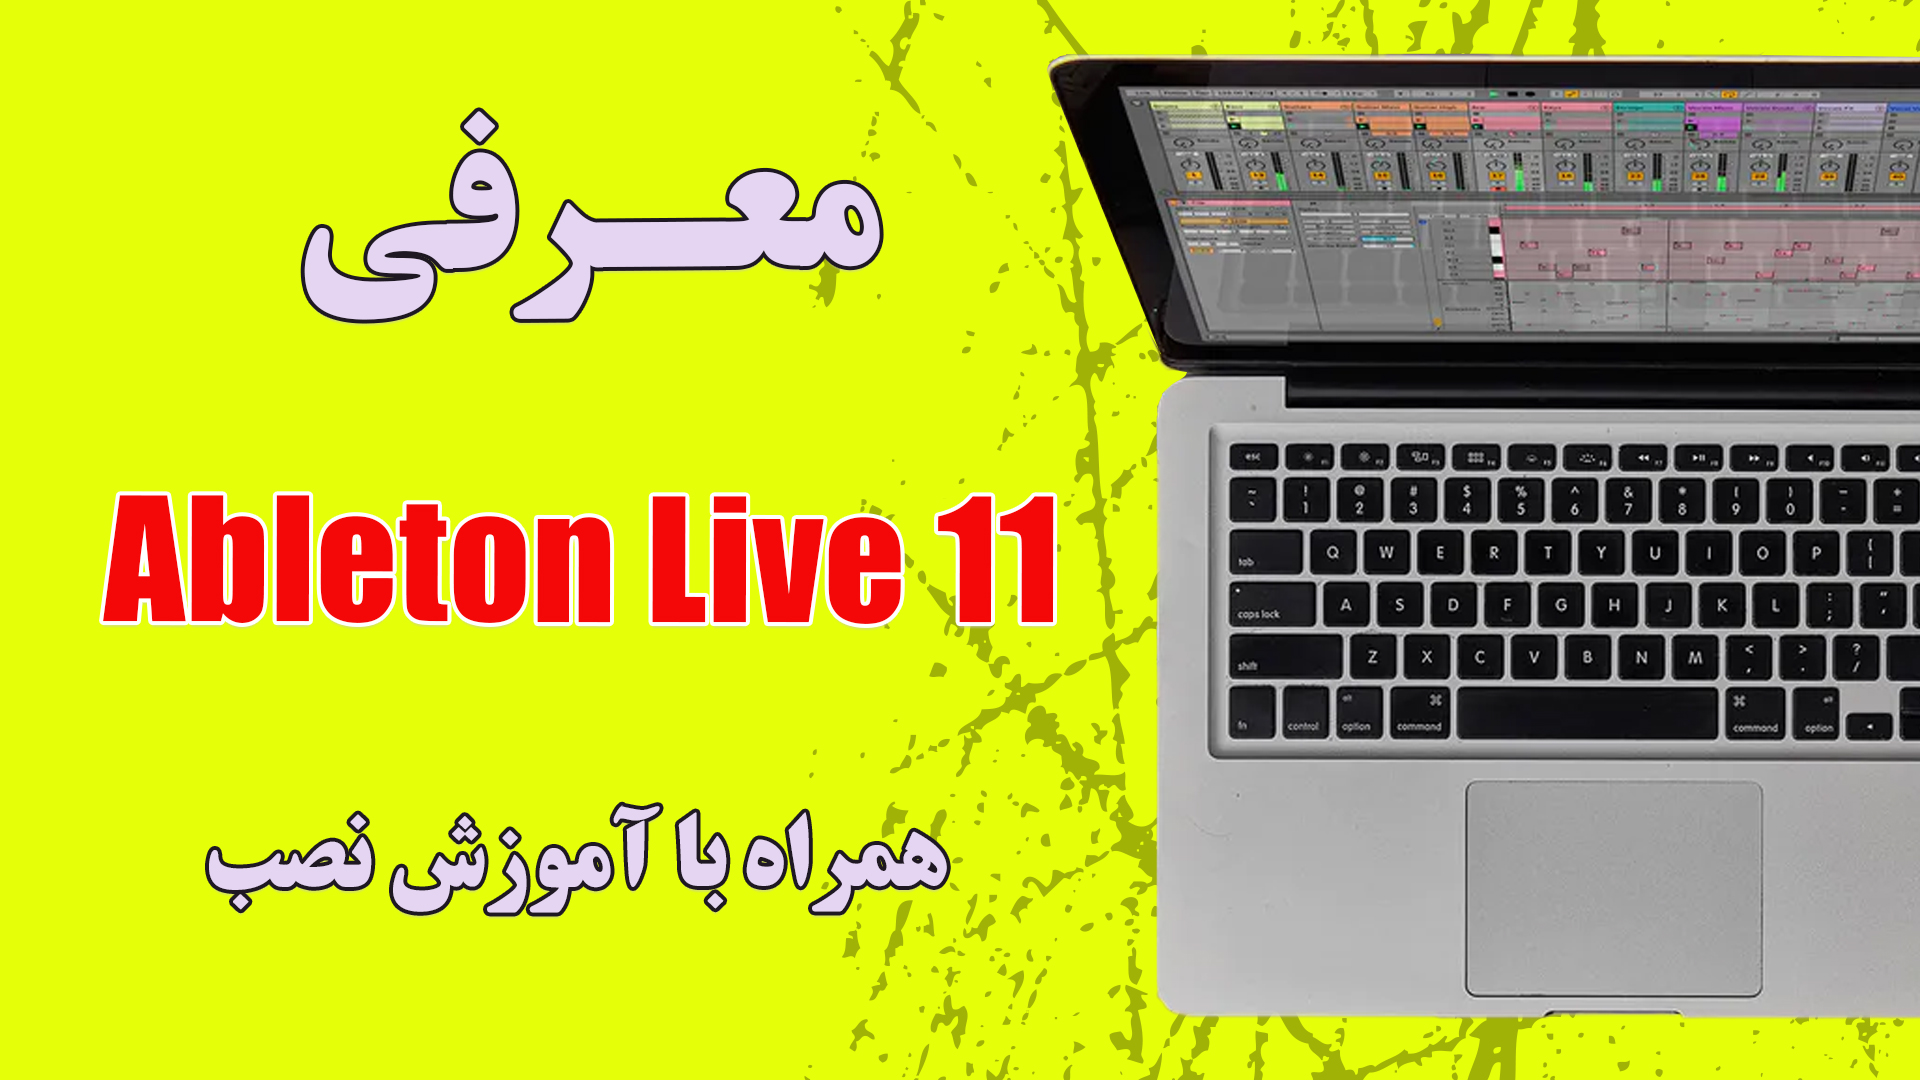 Ableton Live 11 Review